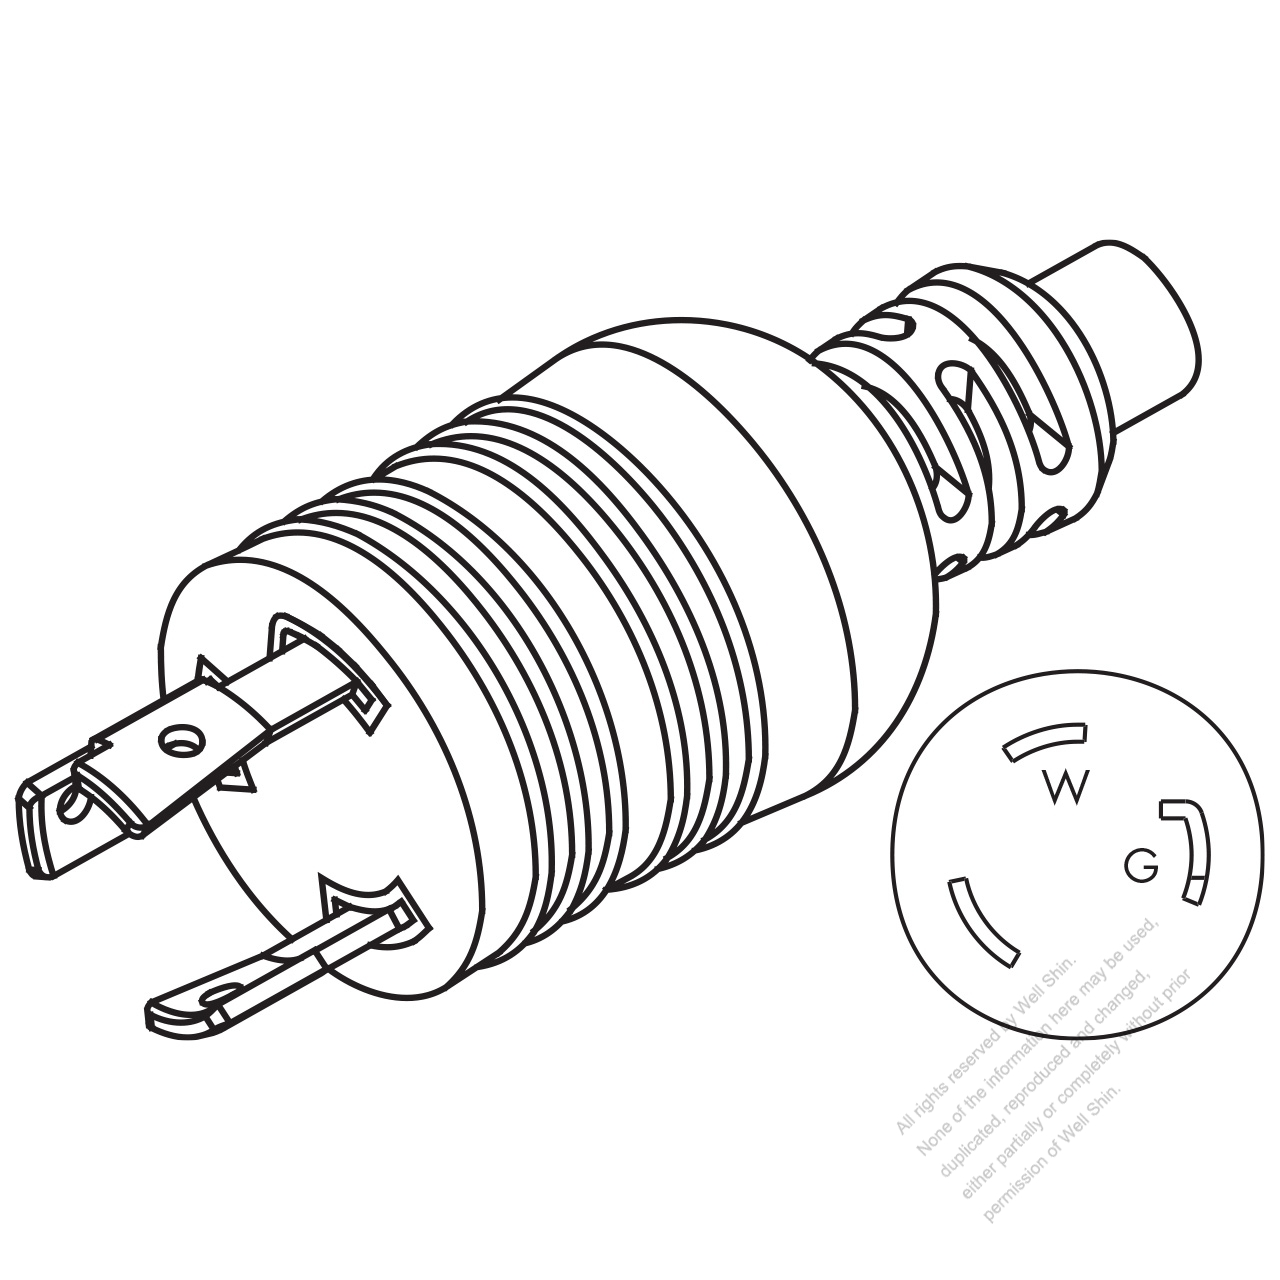 125v plug wiring diagram